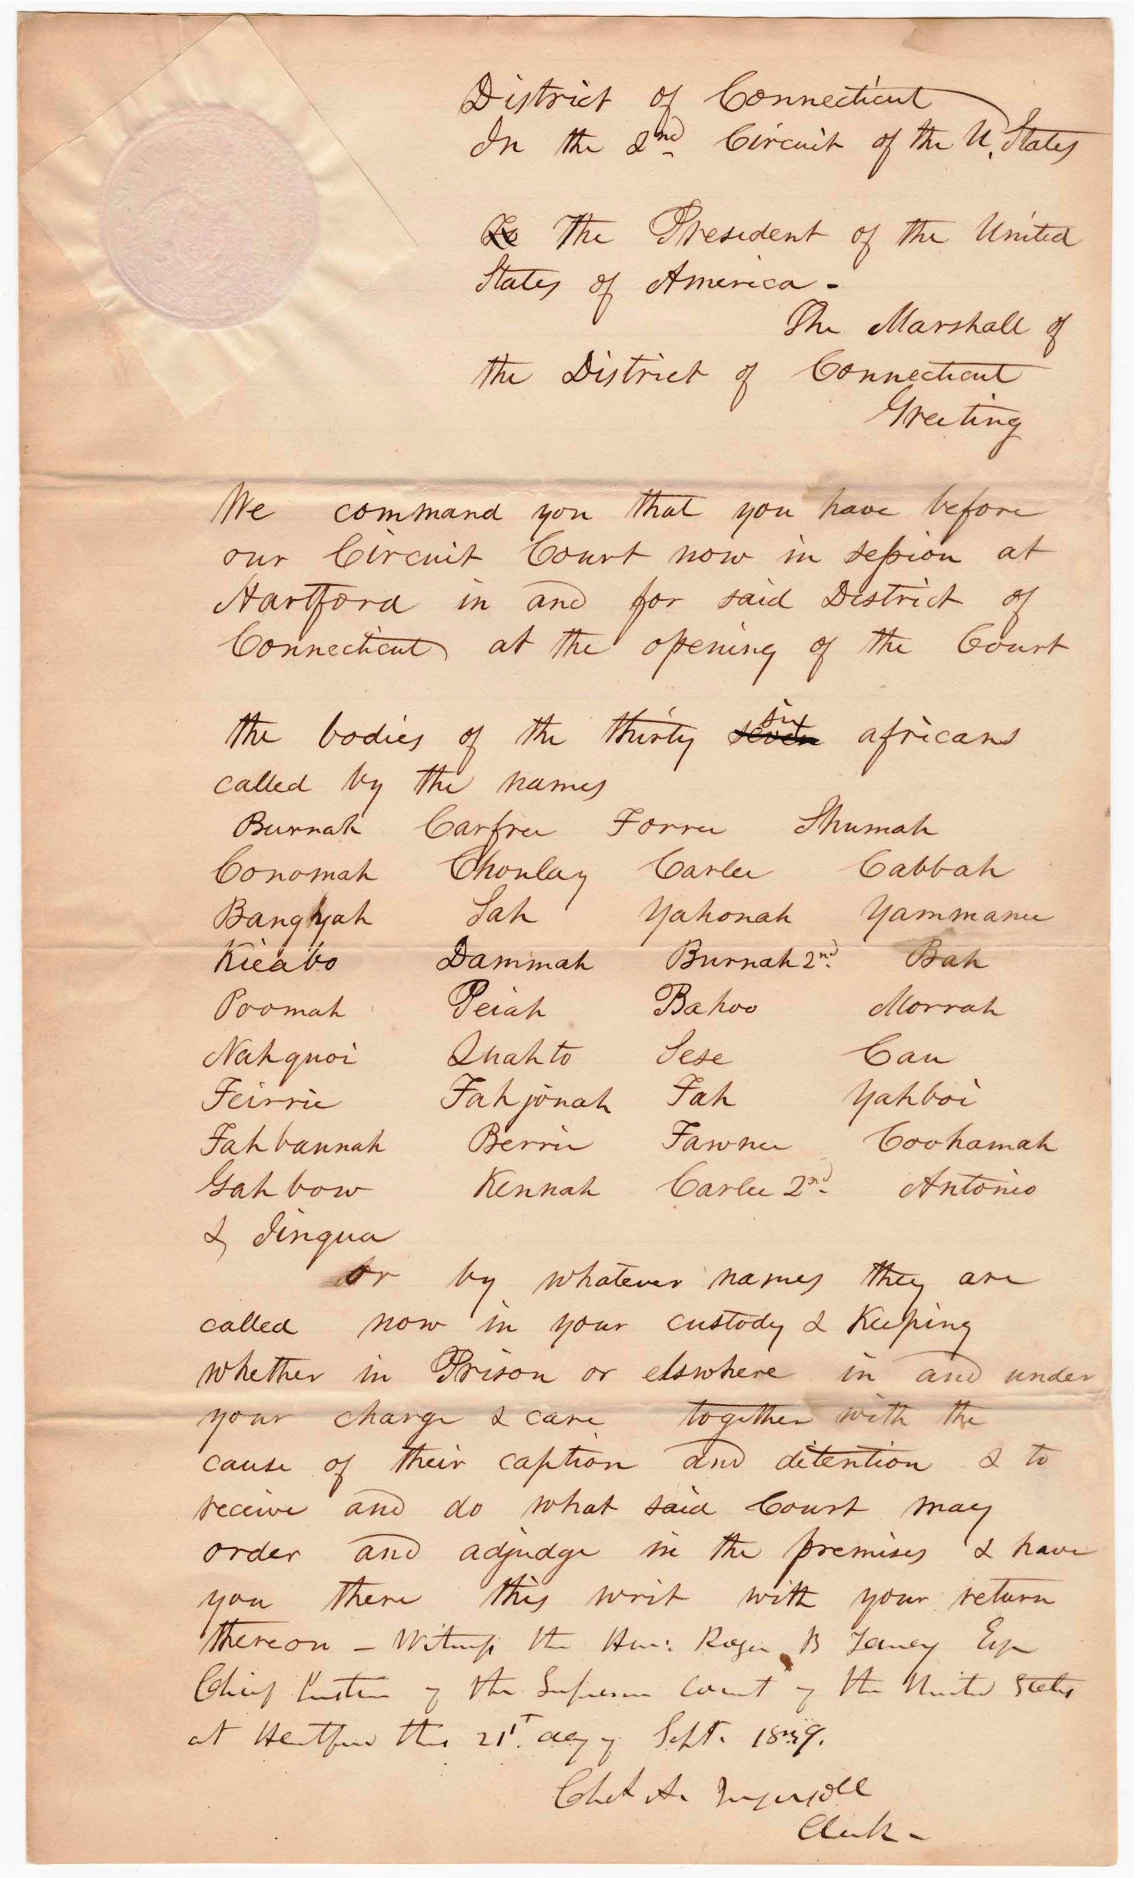 amistad trial The amistad court case - part 2 abstract: connecticut history the amistad court case - part 2 the trial began the defense team was made up of connecticut natives, roger sherman baldwin and theodore sedgwick they both attended yale college they both supported the abolitionist movement that.